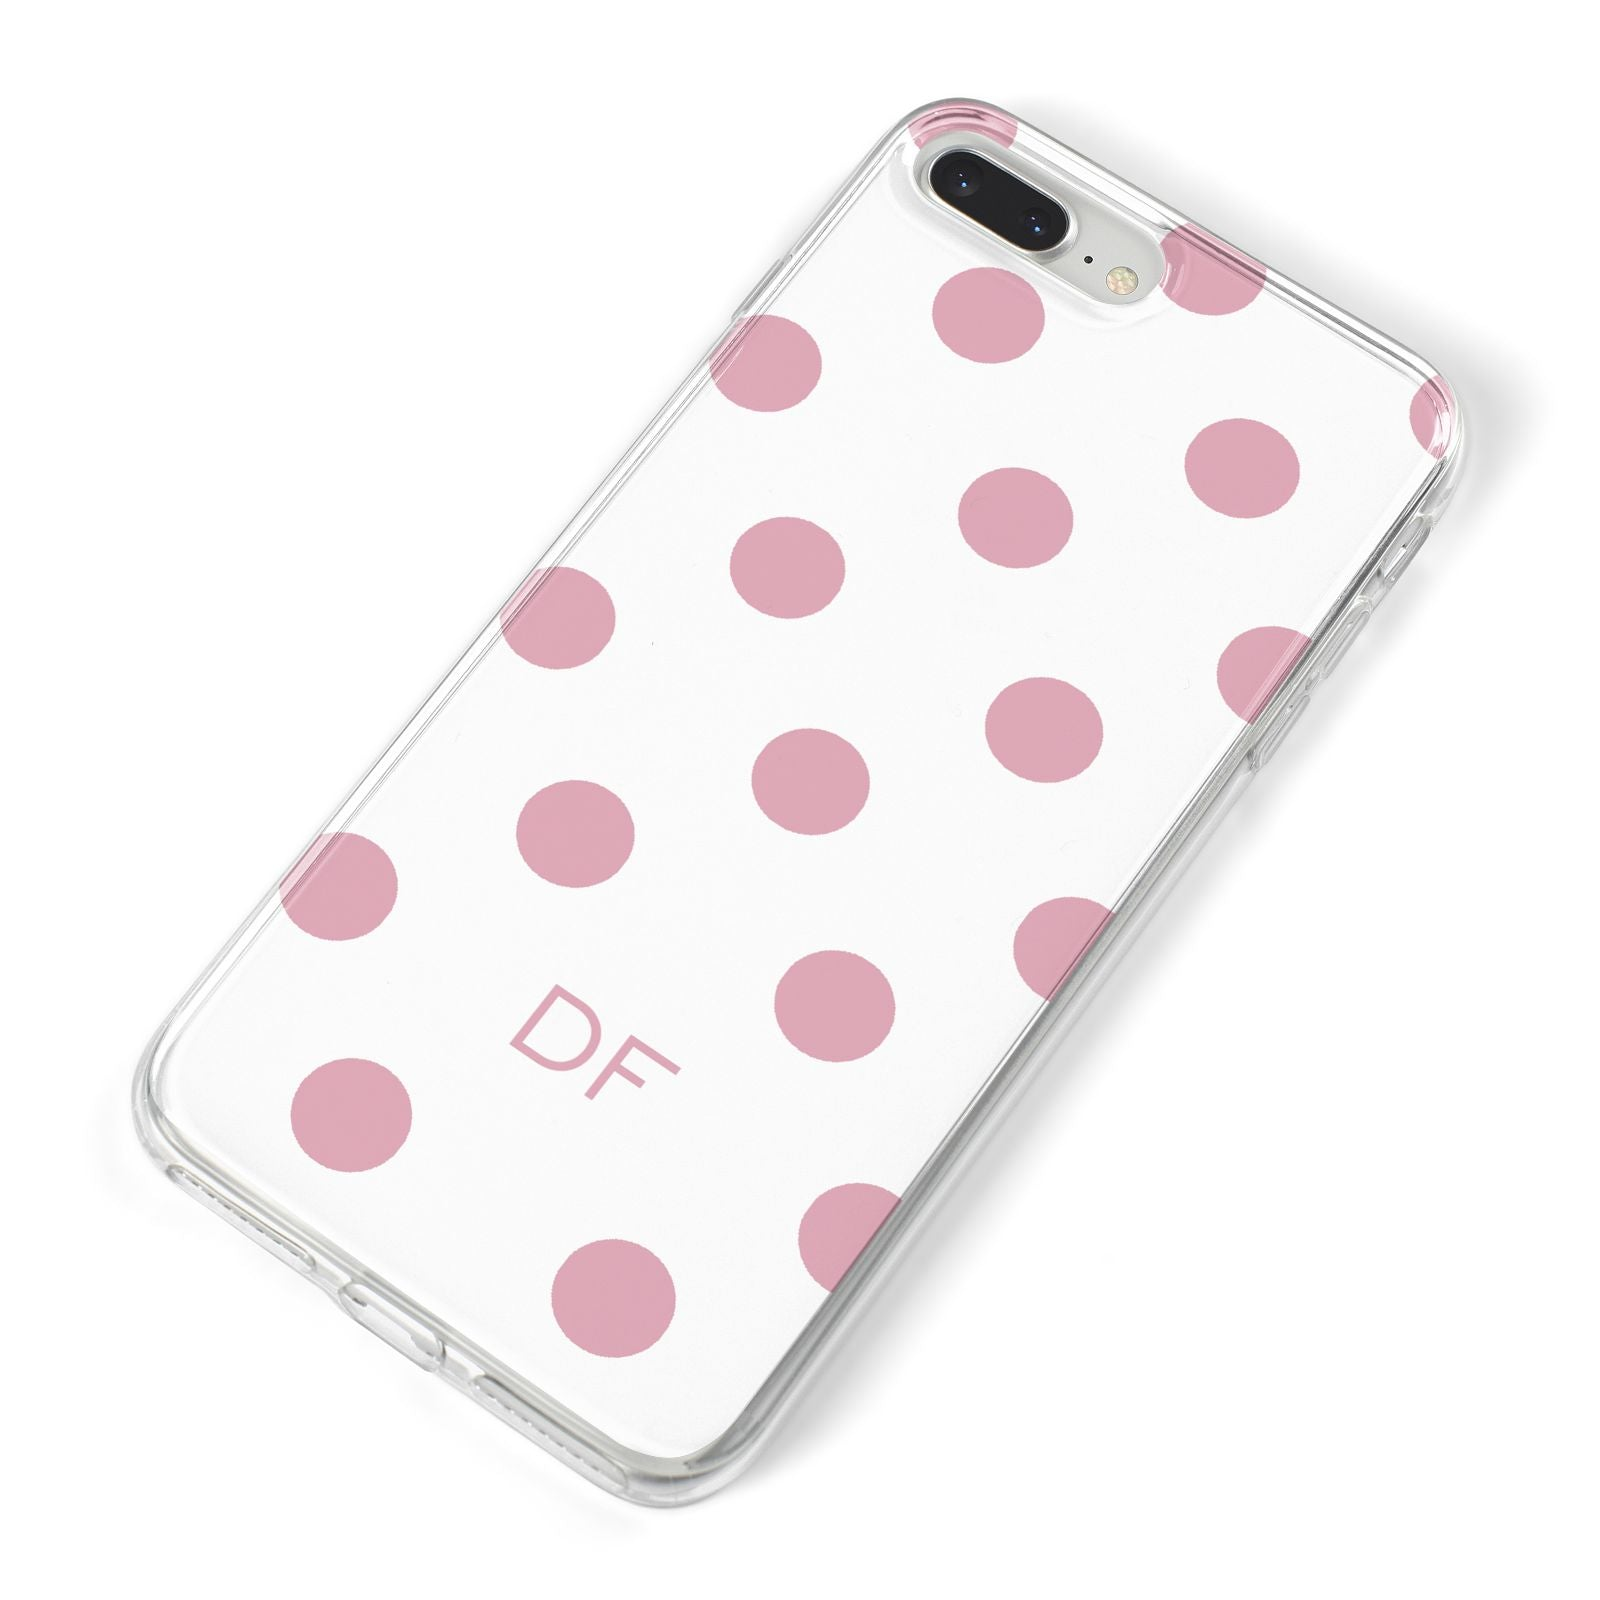 Dots Initials Personalised iPhone 8 Plus Bumper Case on Silver iPhone Alternative Image